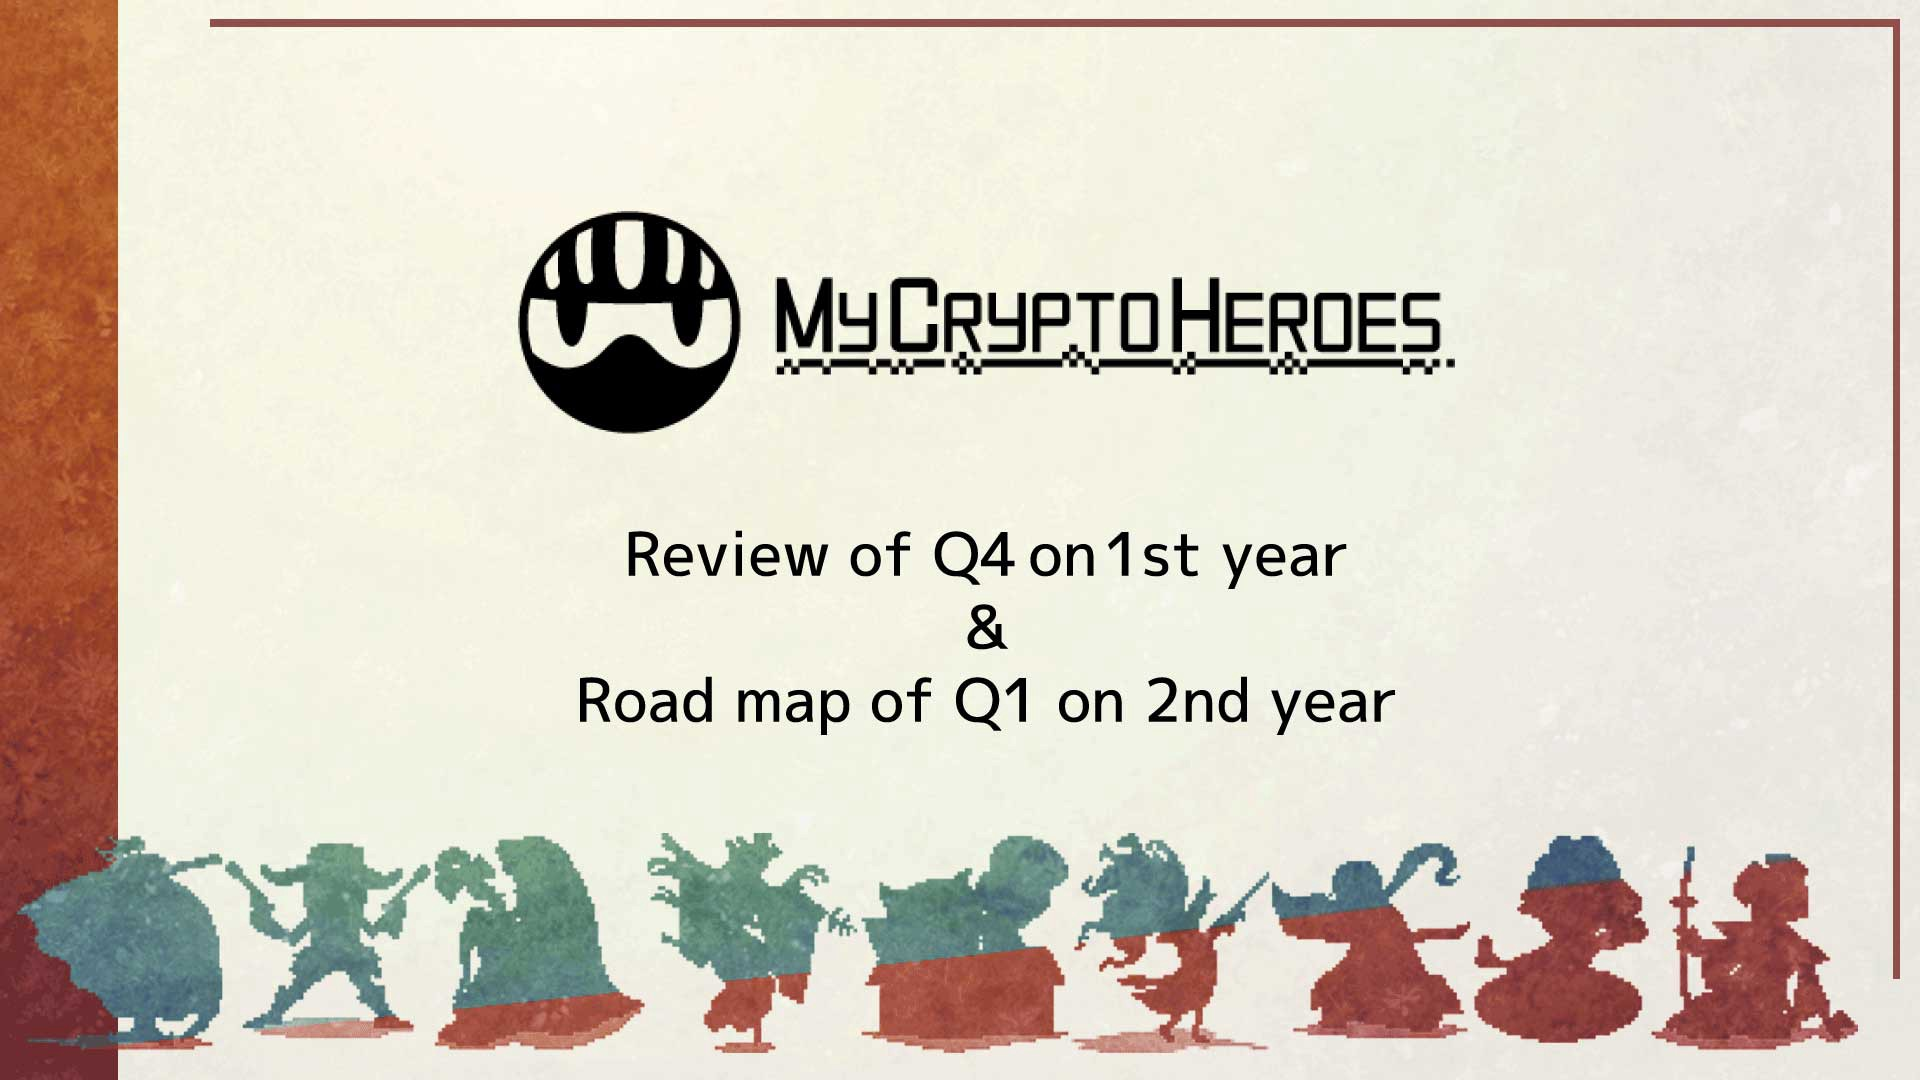 Road map of Q1 on 2nd Year